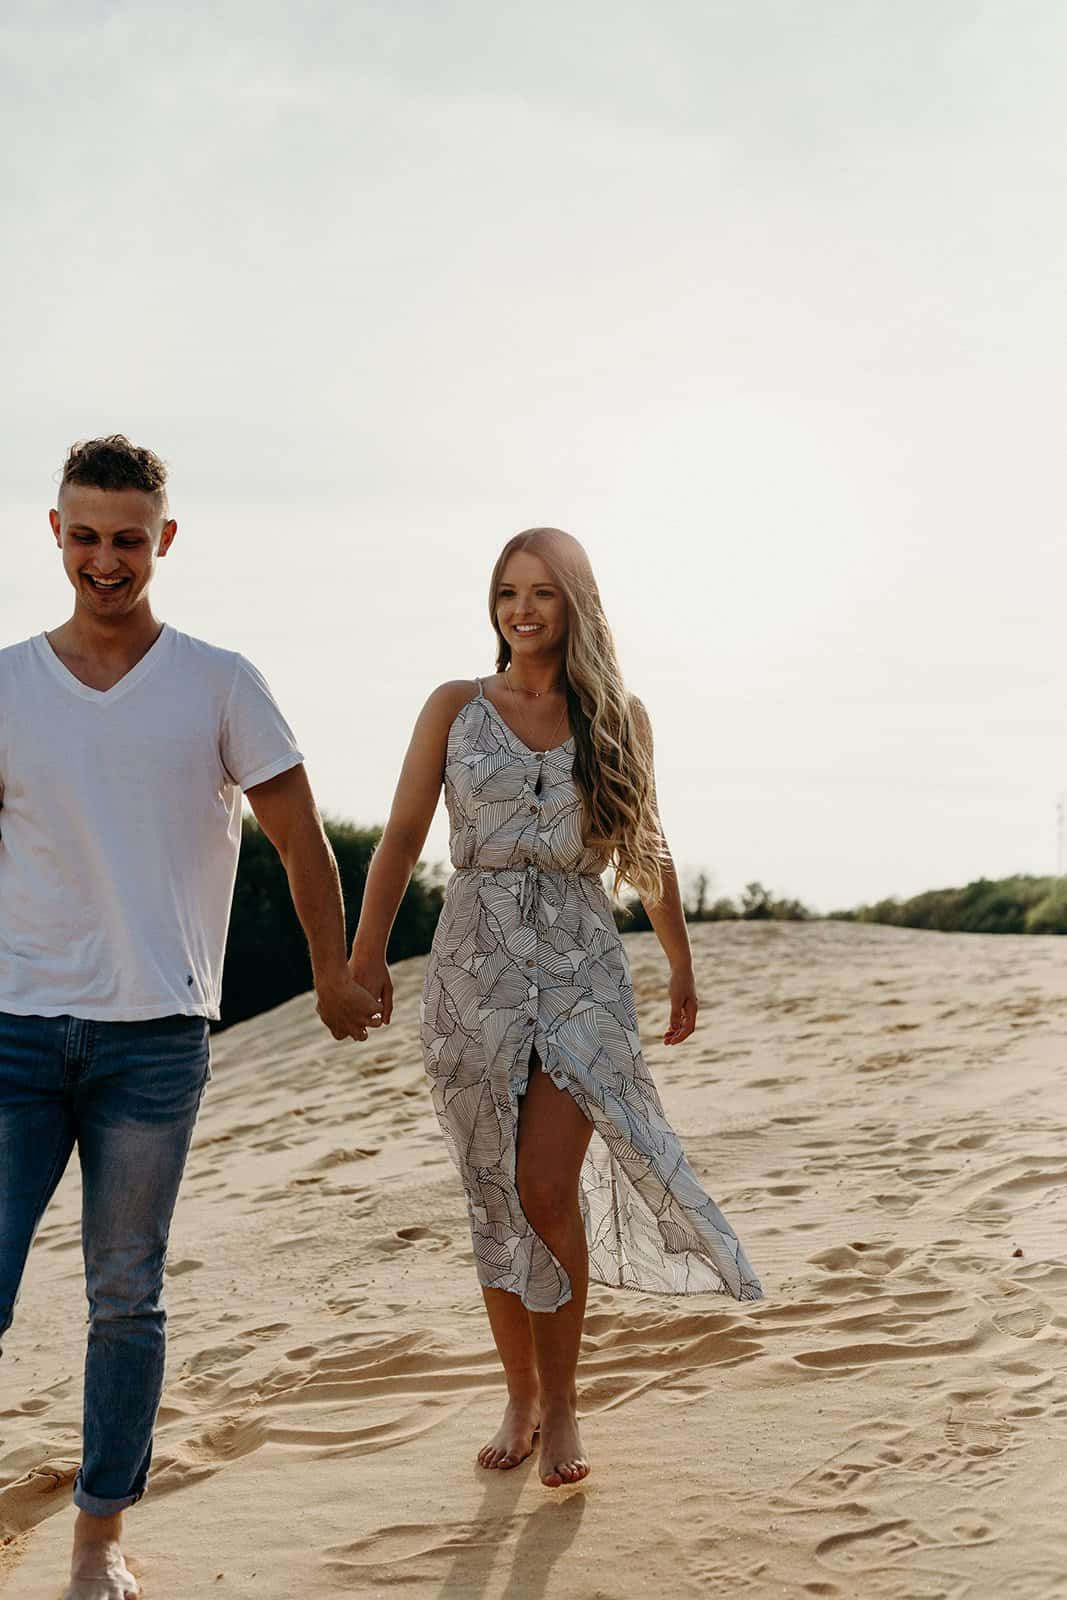 Ohio Sand Dunes Engagement | Addison + Morgan 151